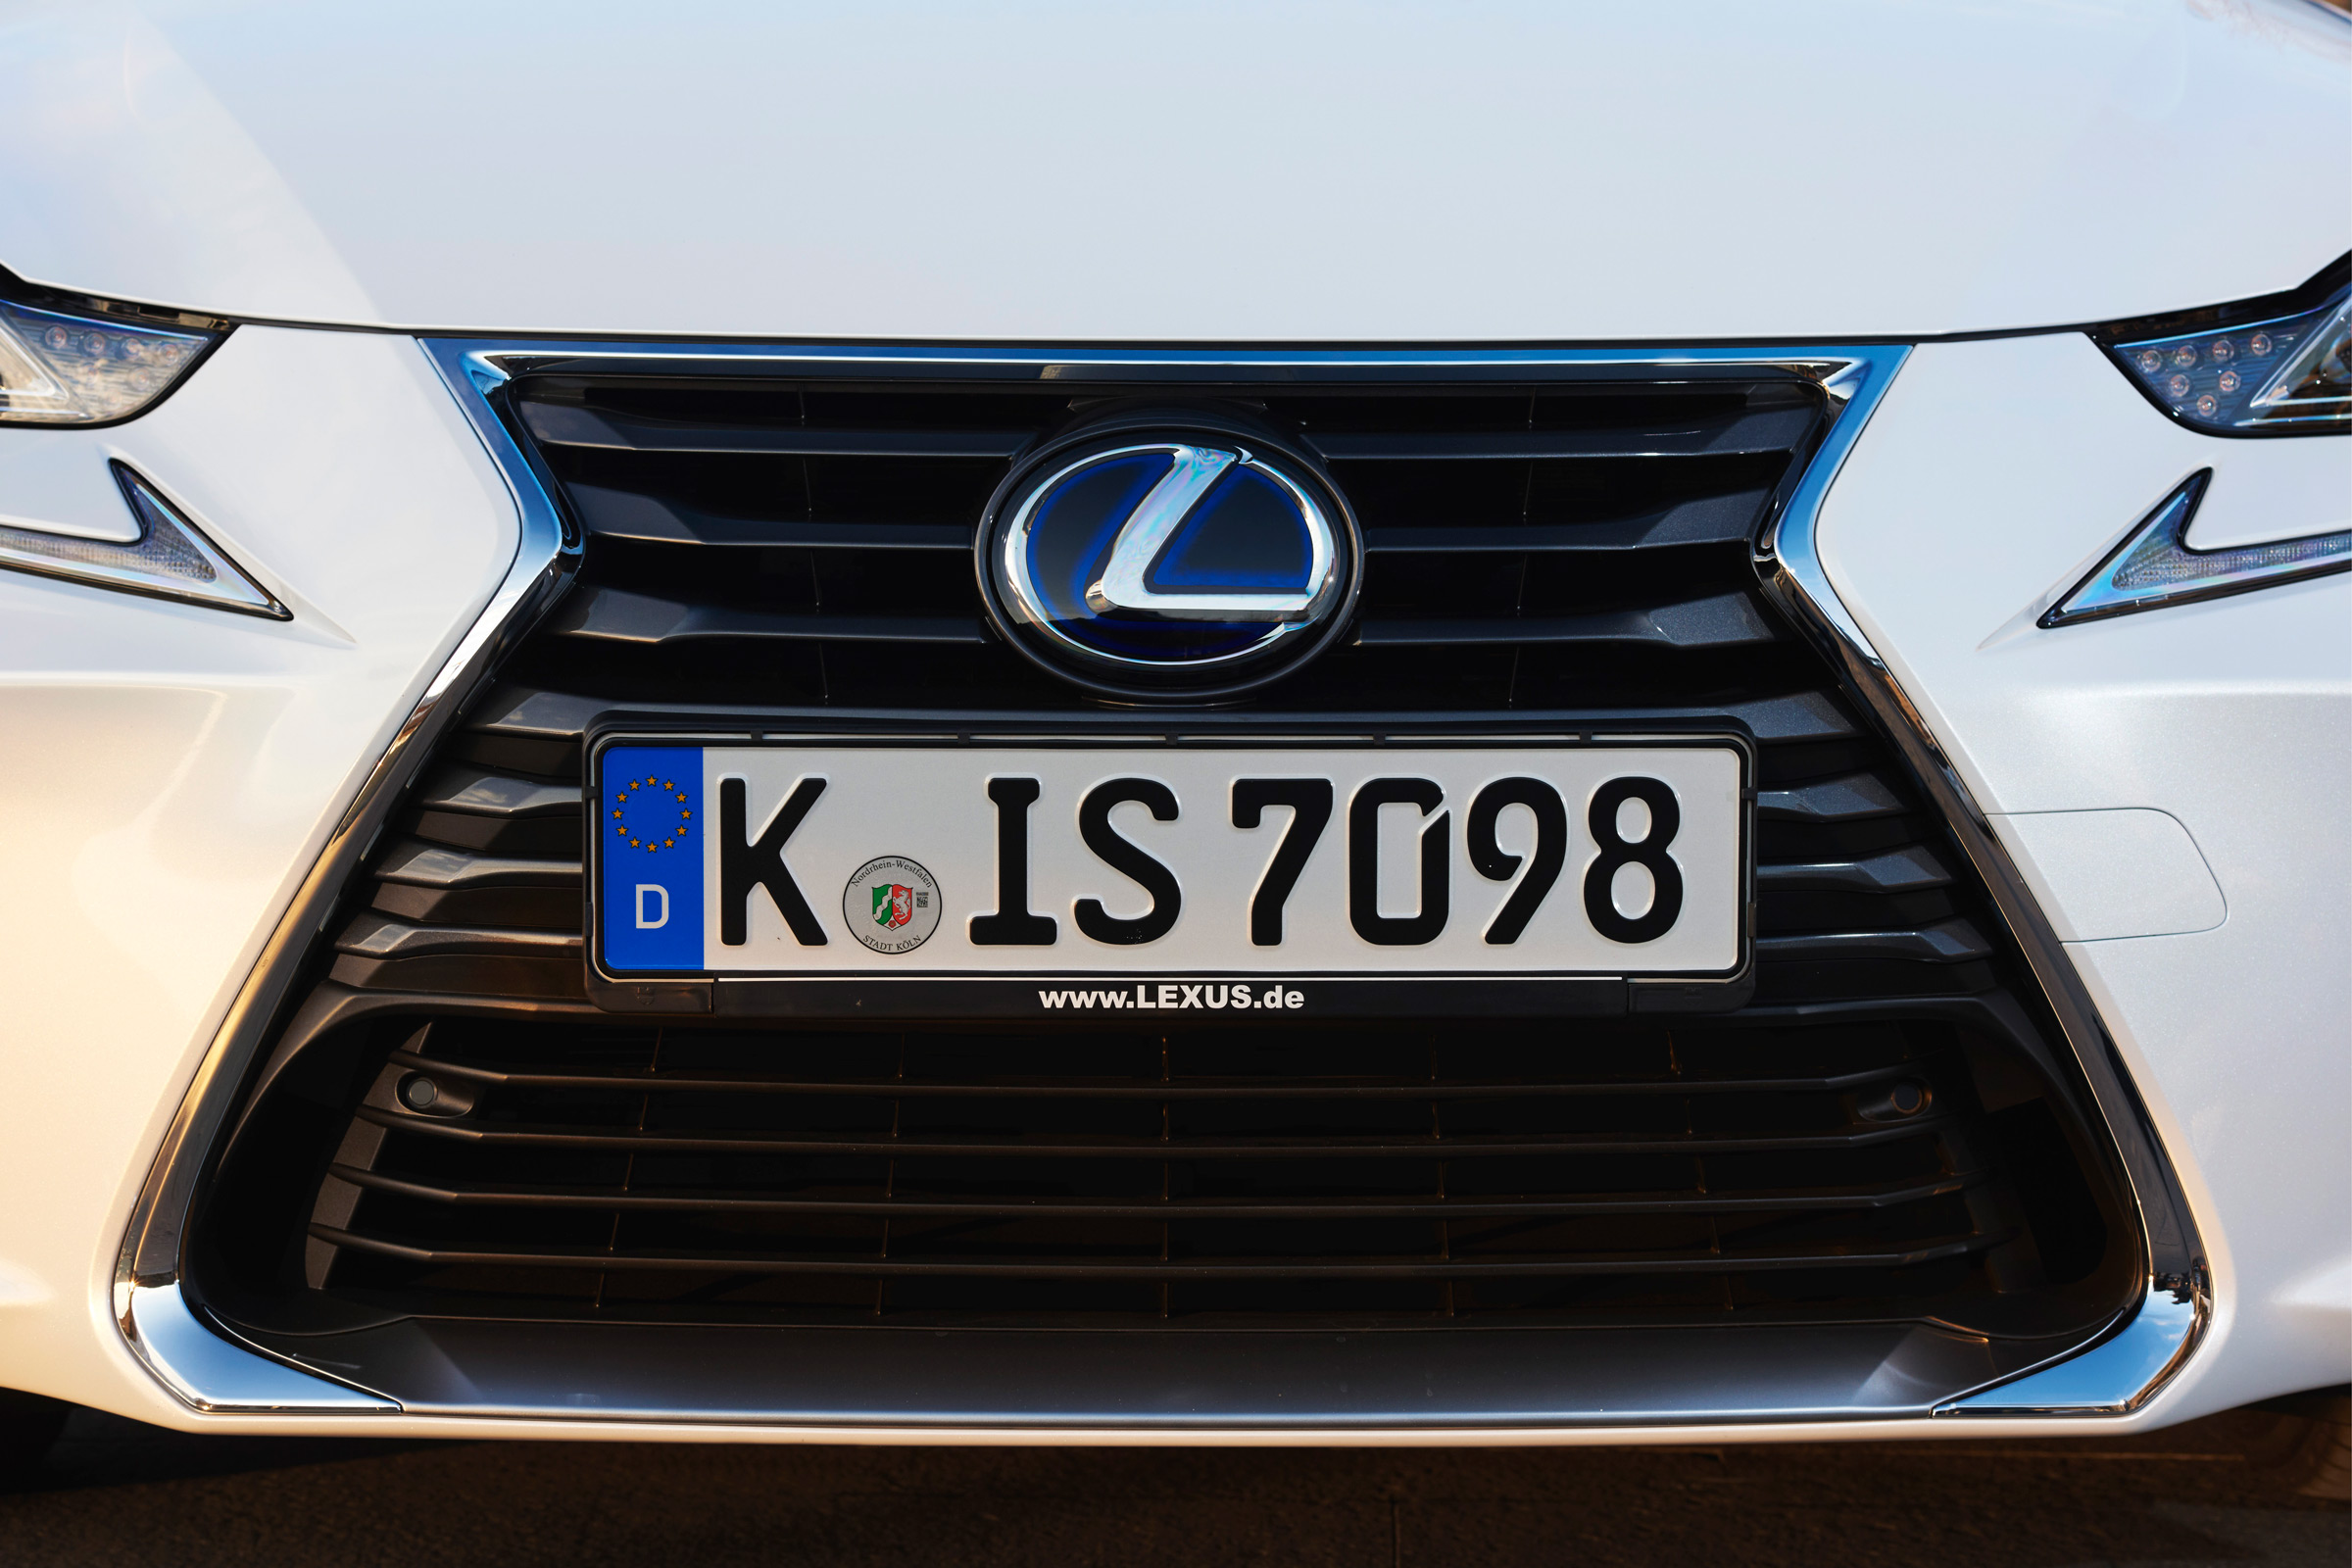 2017 Lexus IS 300h White Exterior View Grille (Photo 11 of 13)